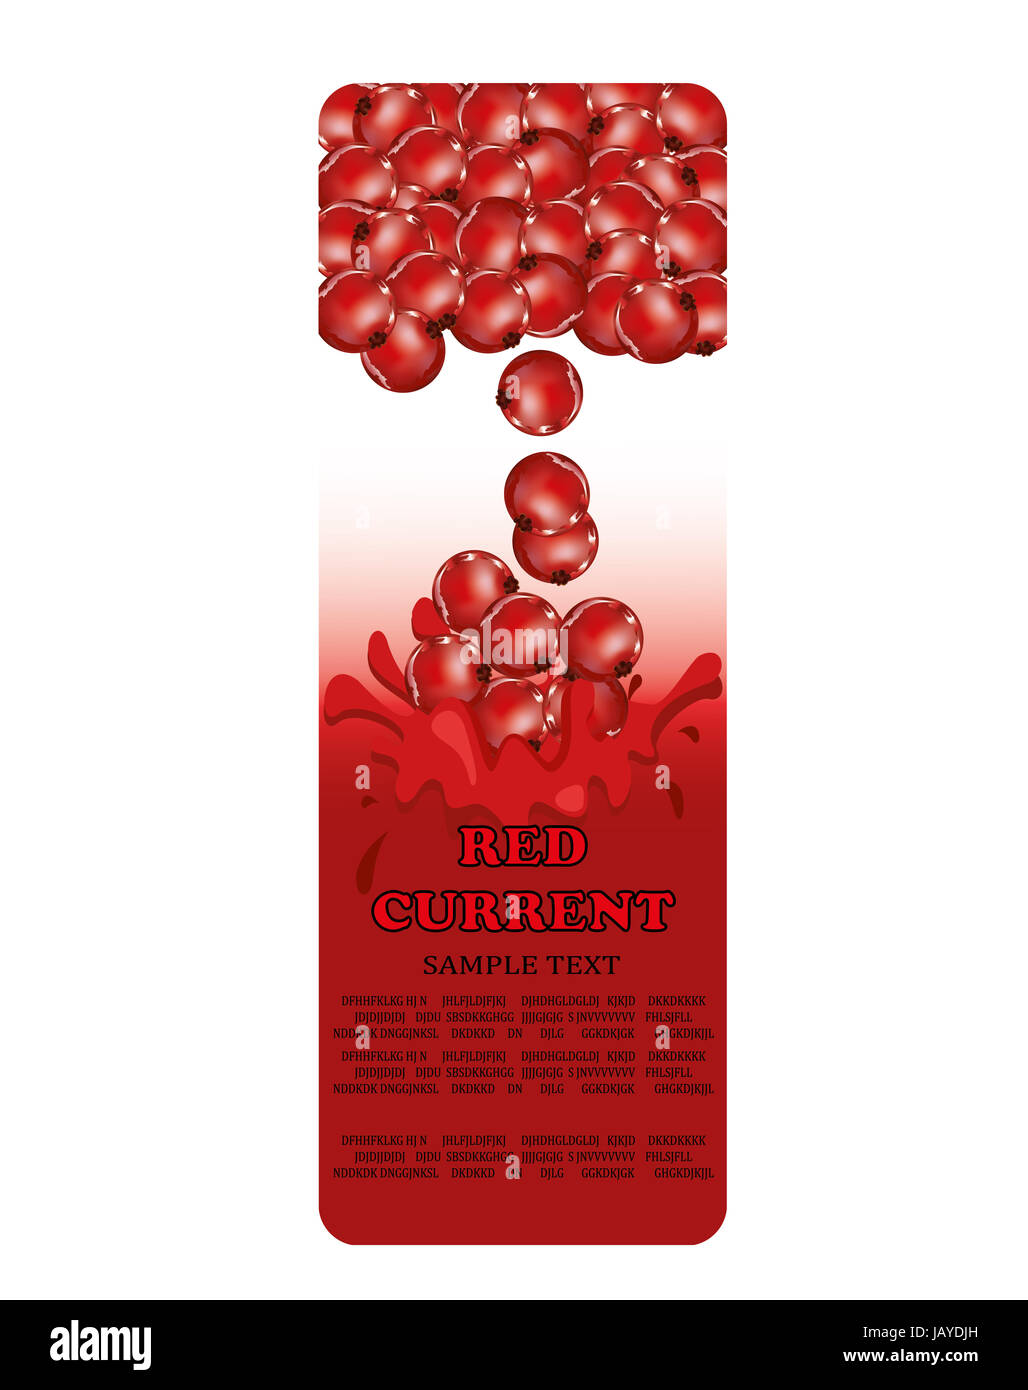 Red Currents - packaging design, label. - Stock Image